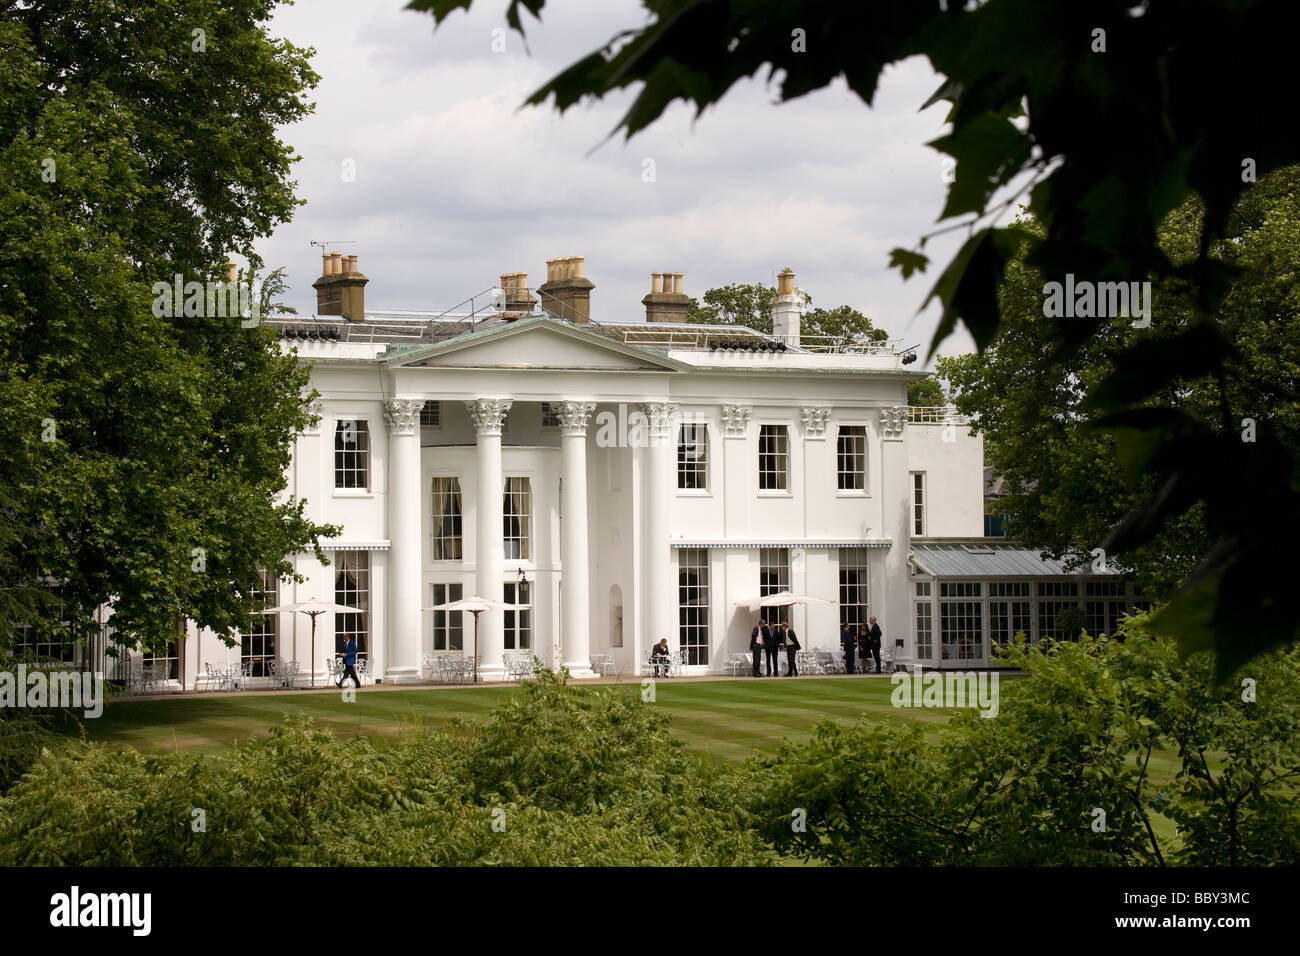 Hurlingham Private Members Clubhouse, Fulham, London, England, UK - Stock Image